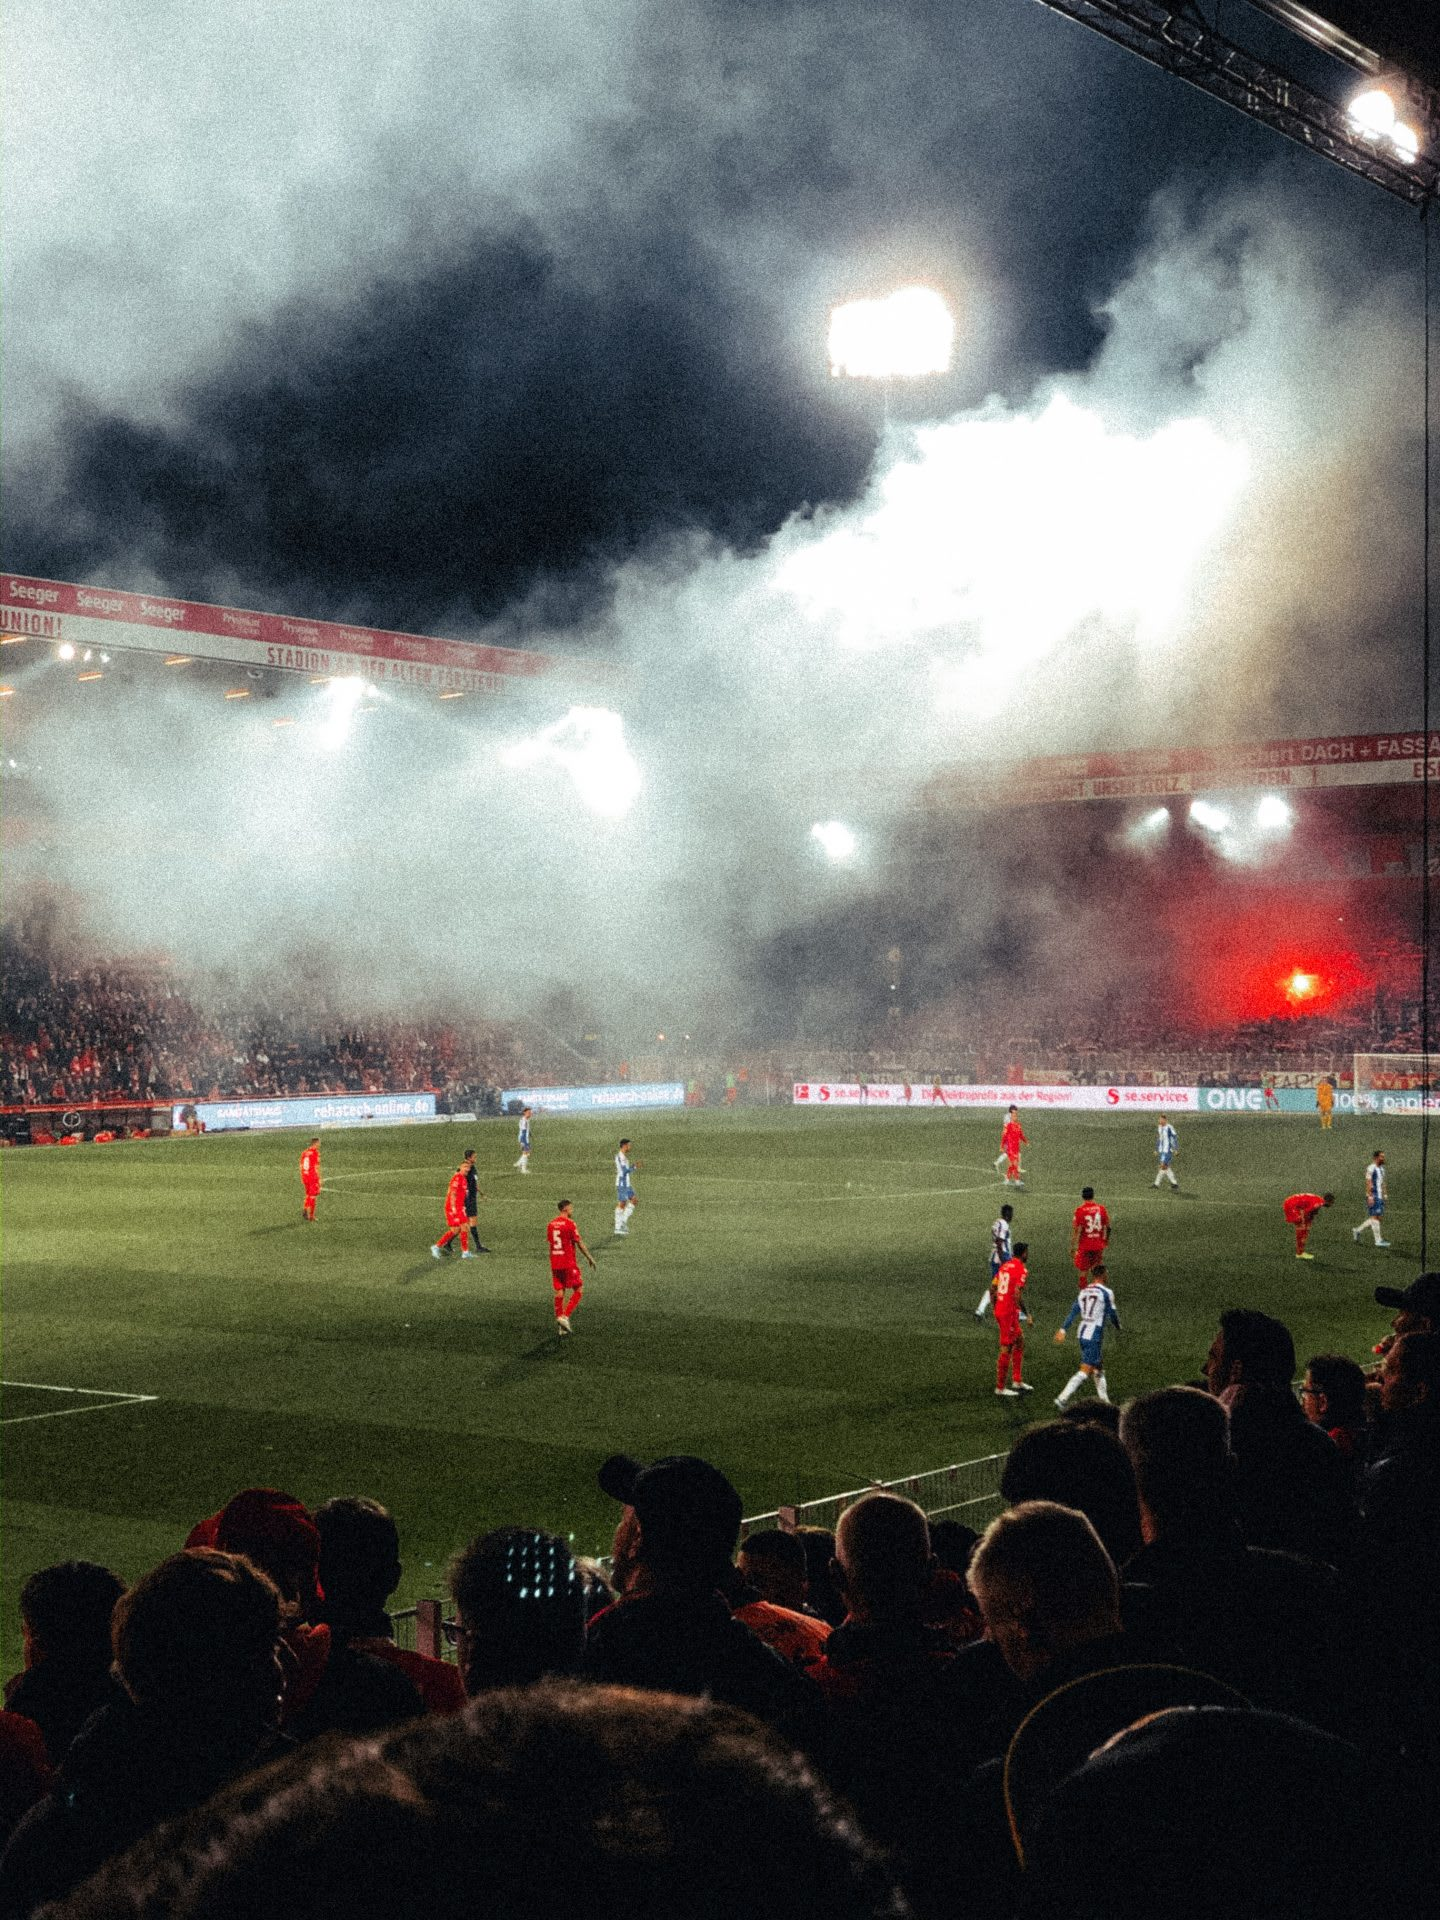 Photograph picturing the atmosphere in the Stadium of Bundesliga Club Union Berlin during a game under floodlight.